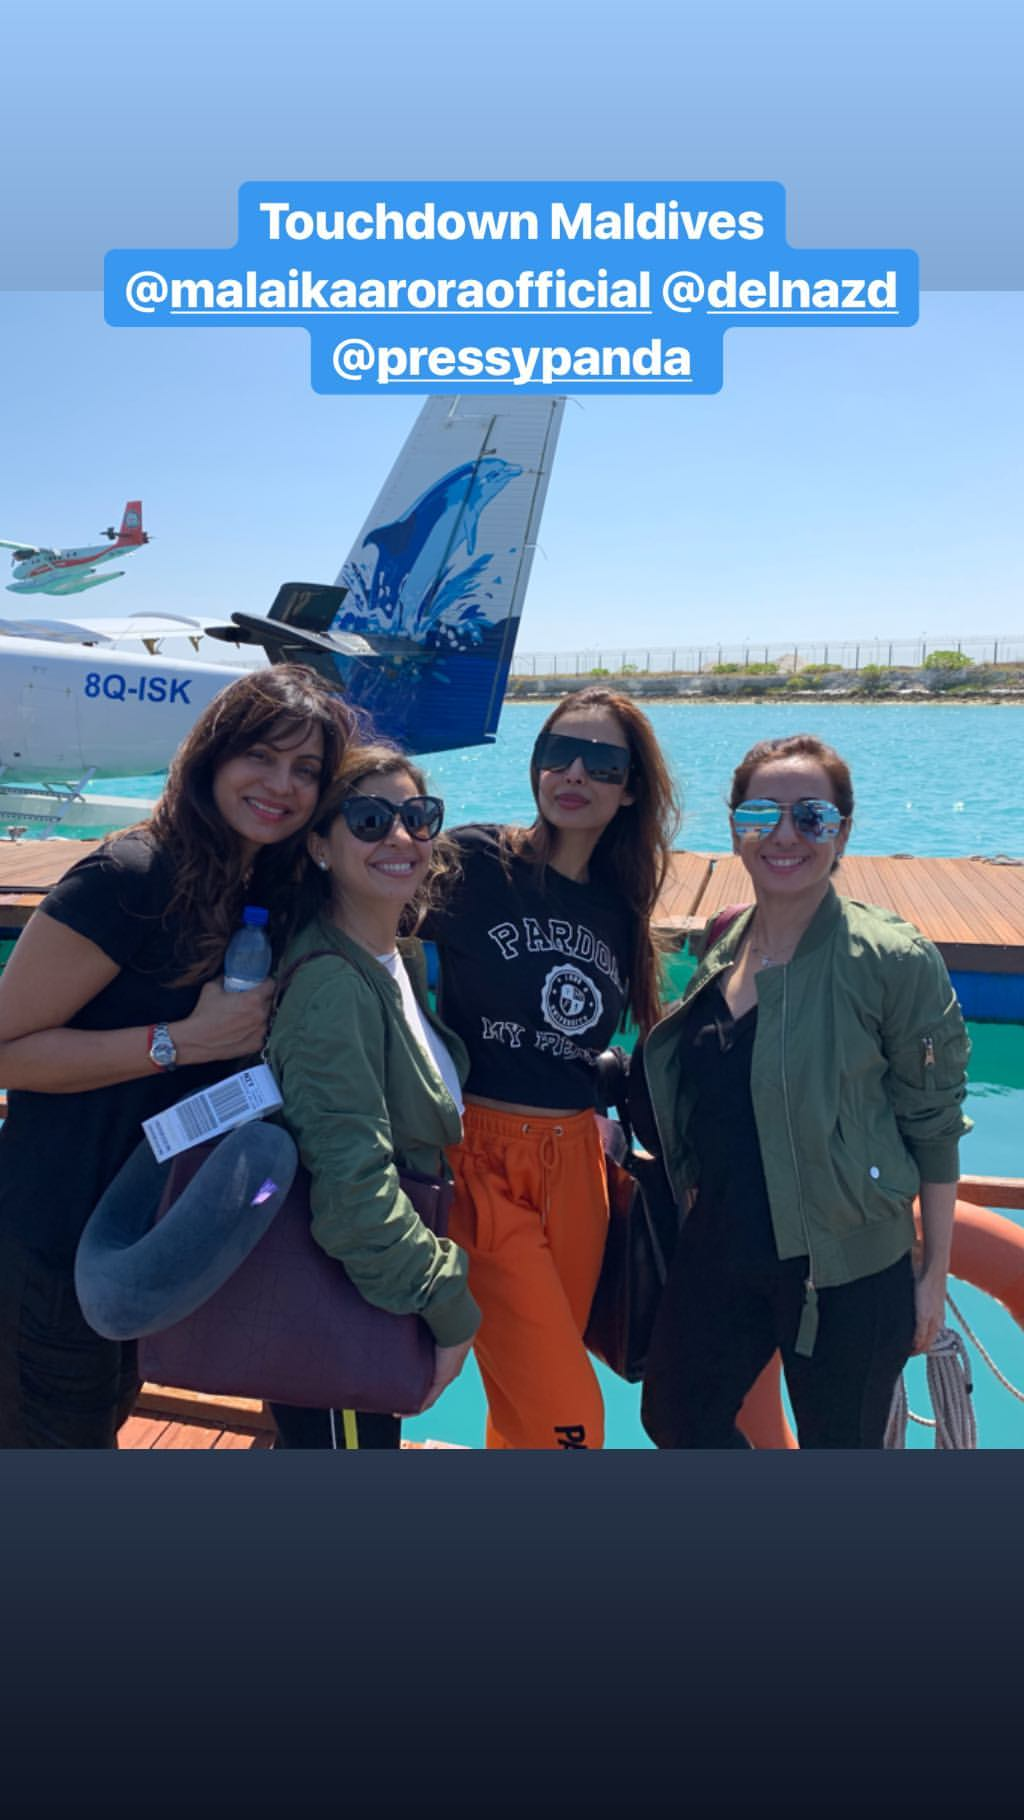 Malaika Arora and friends in the Maldives